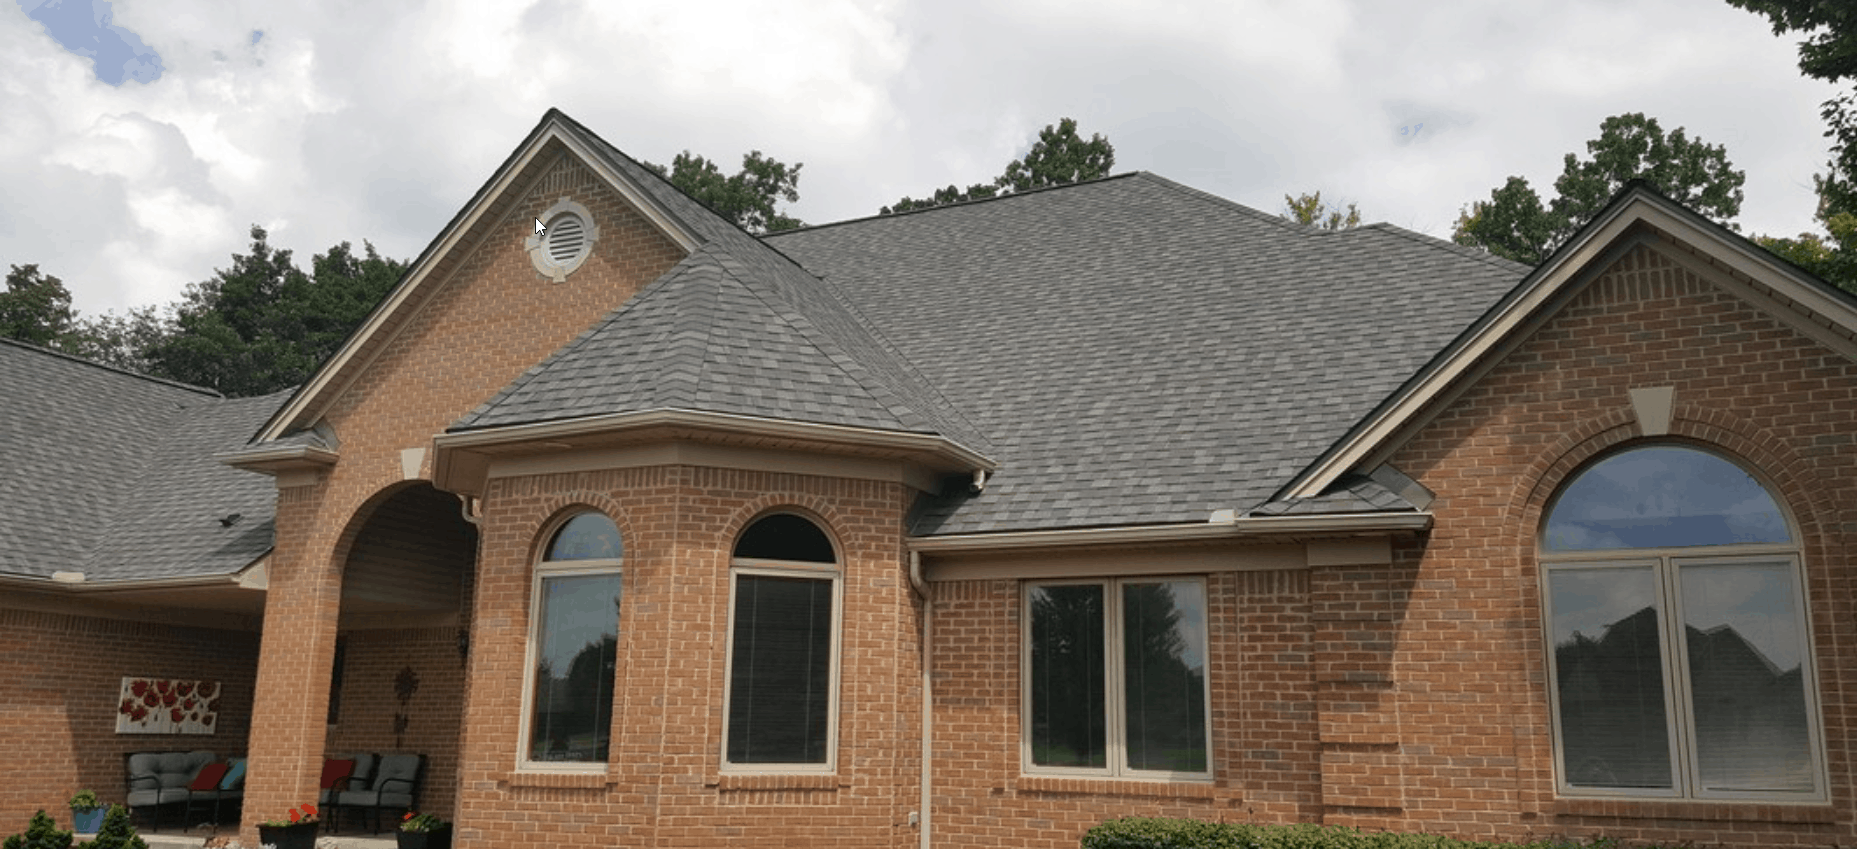 Provo roofer residential Roofing Contractor